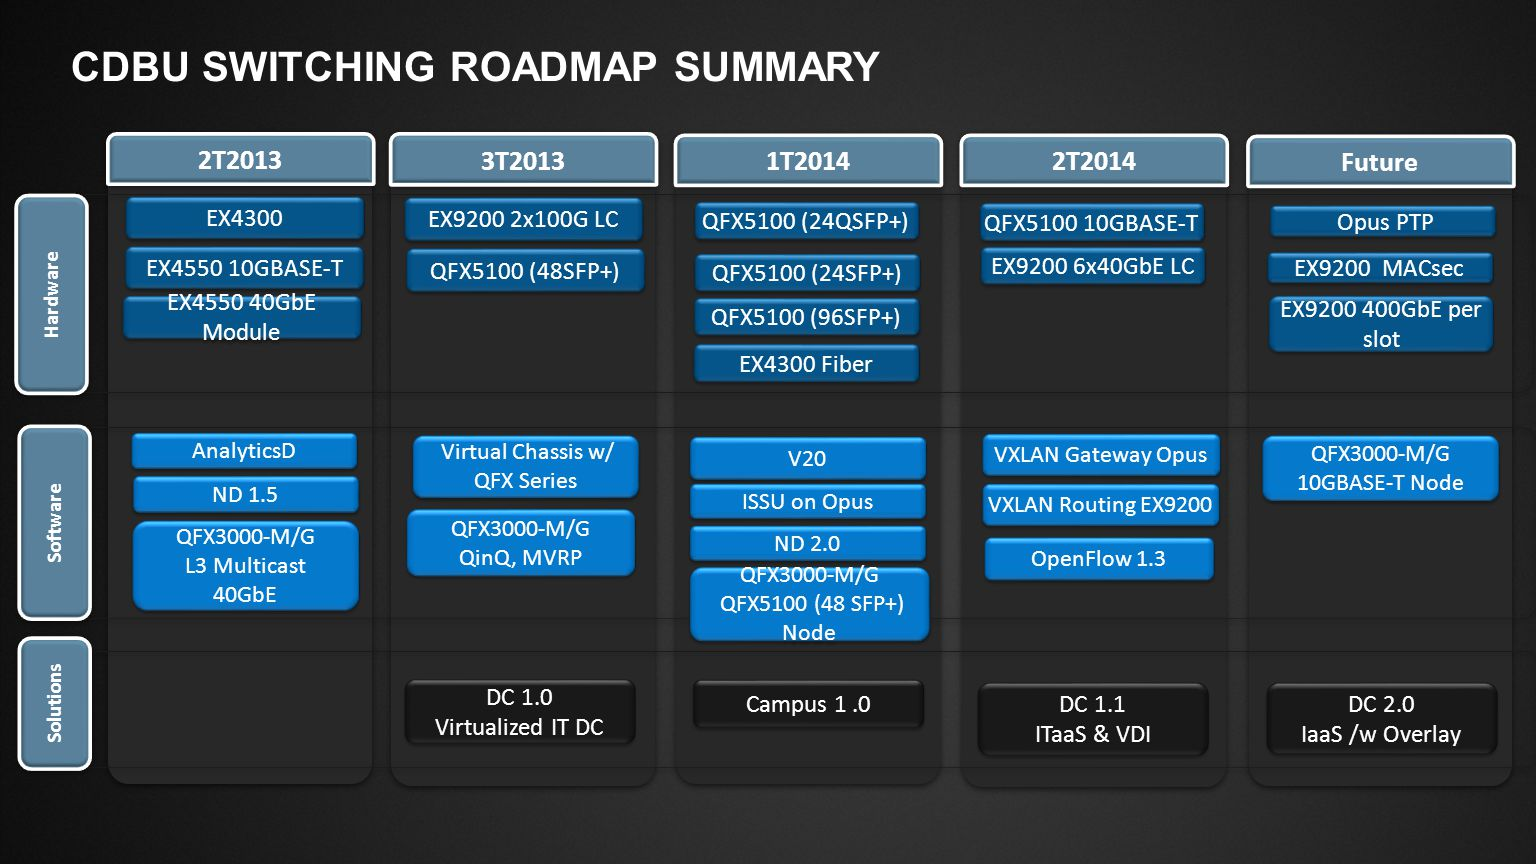 CDBU Switching roadmap summary